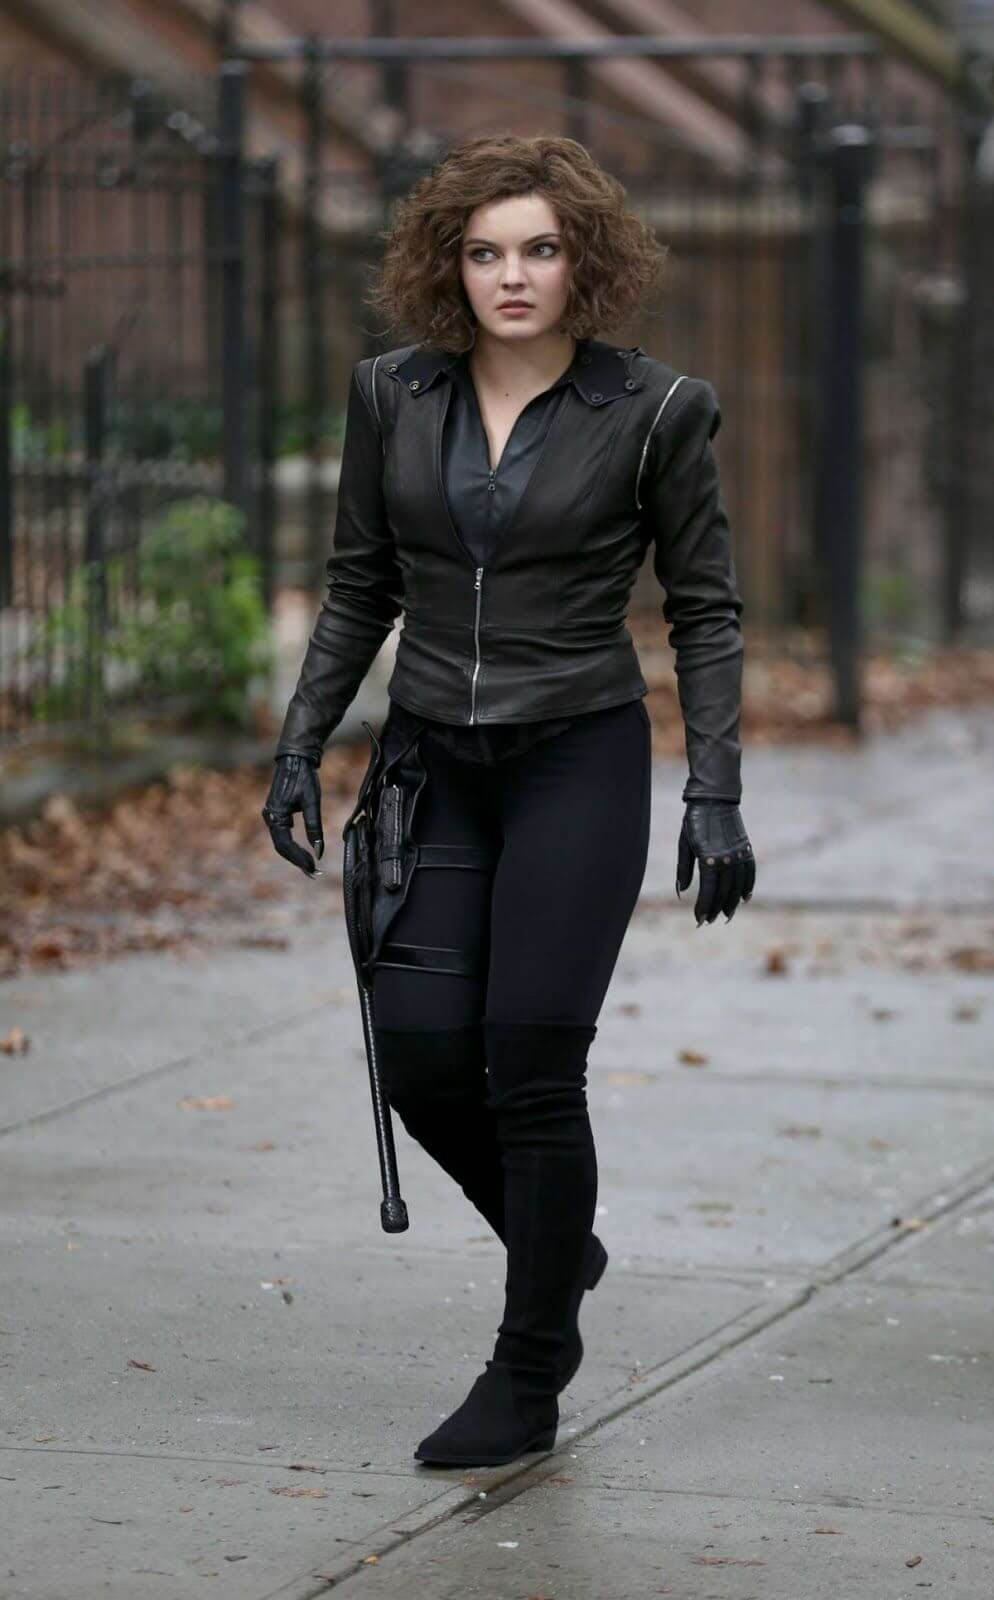 Camren Bicondova awesome picture